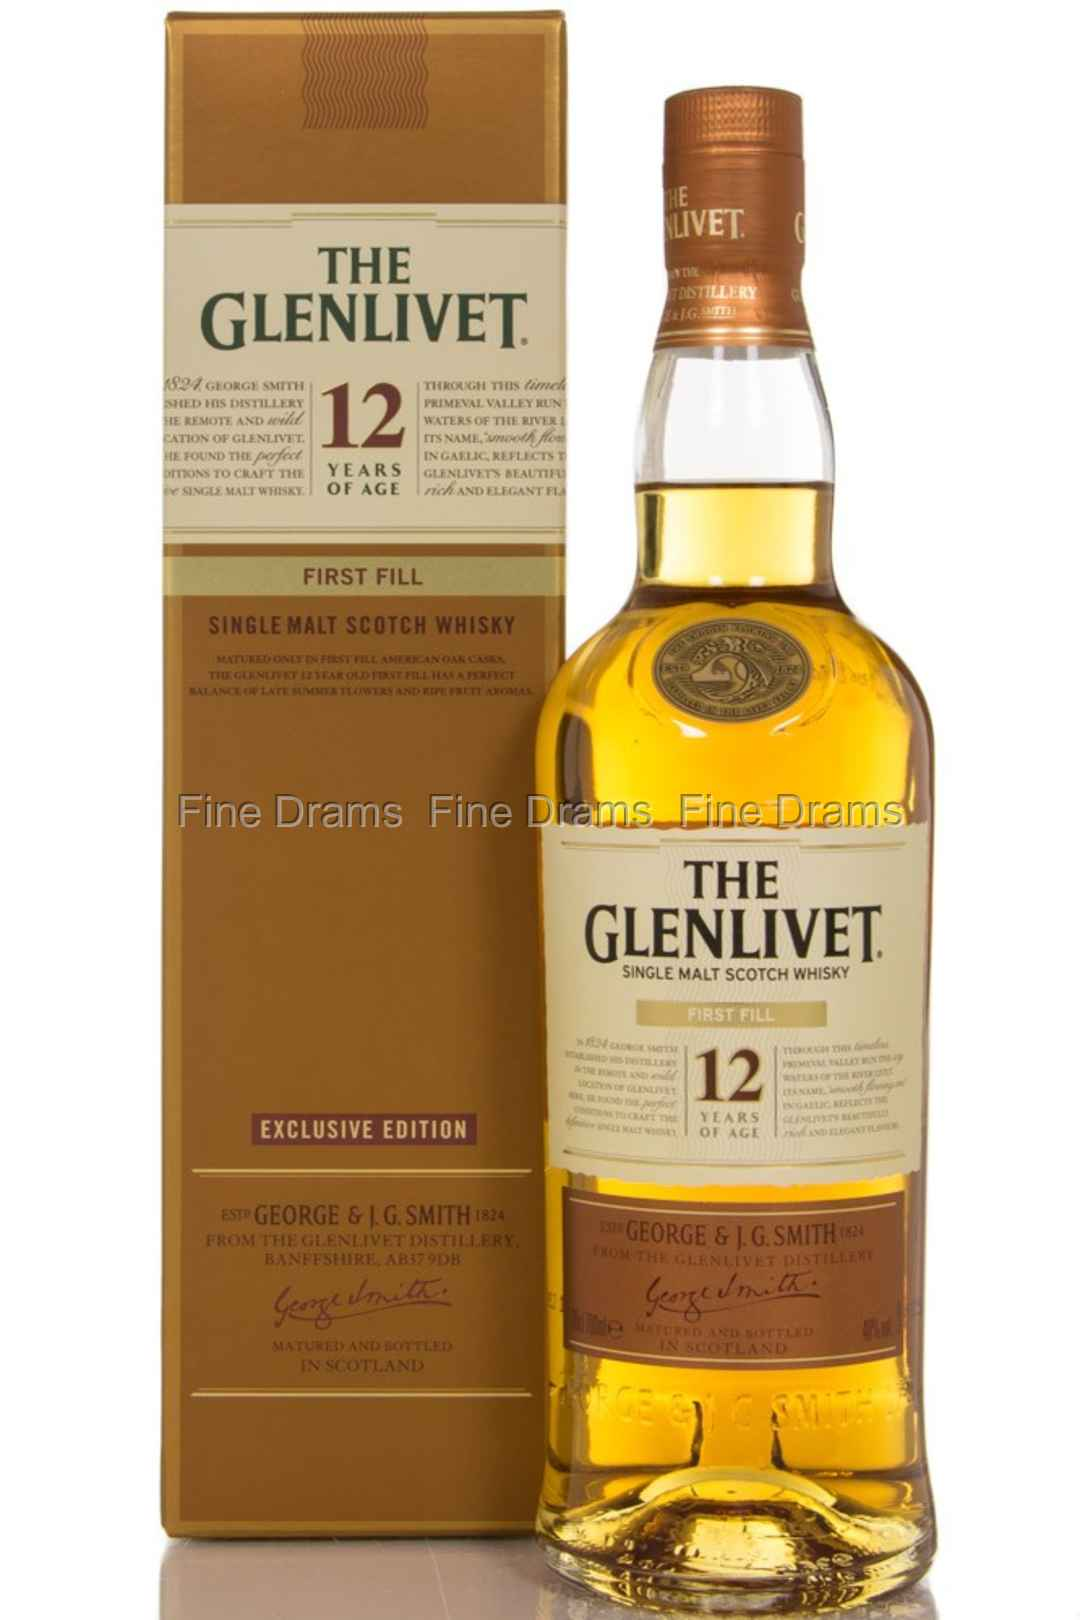 glenlivet 12 year old first fill scotch whisky